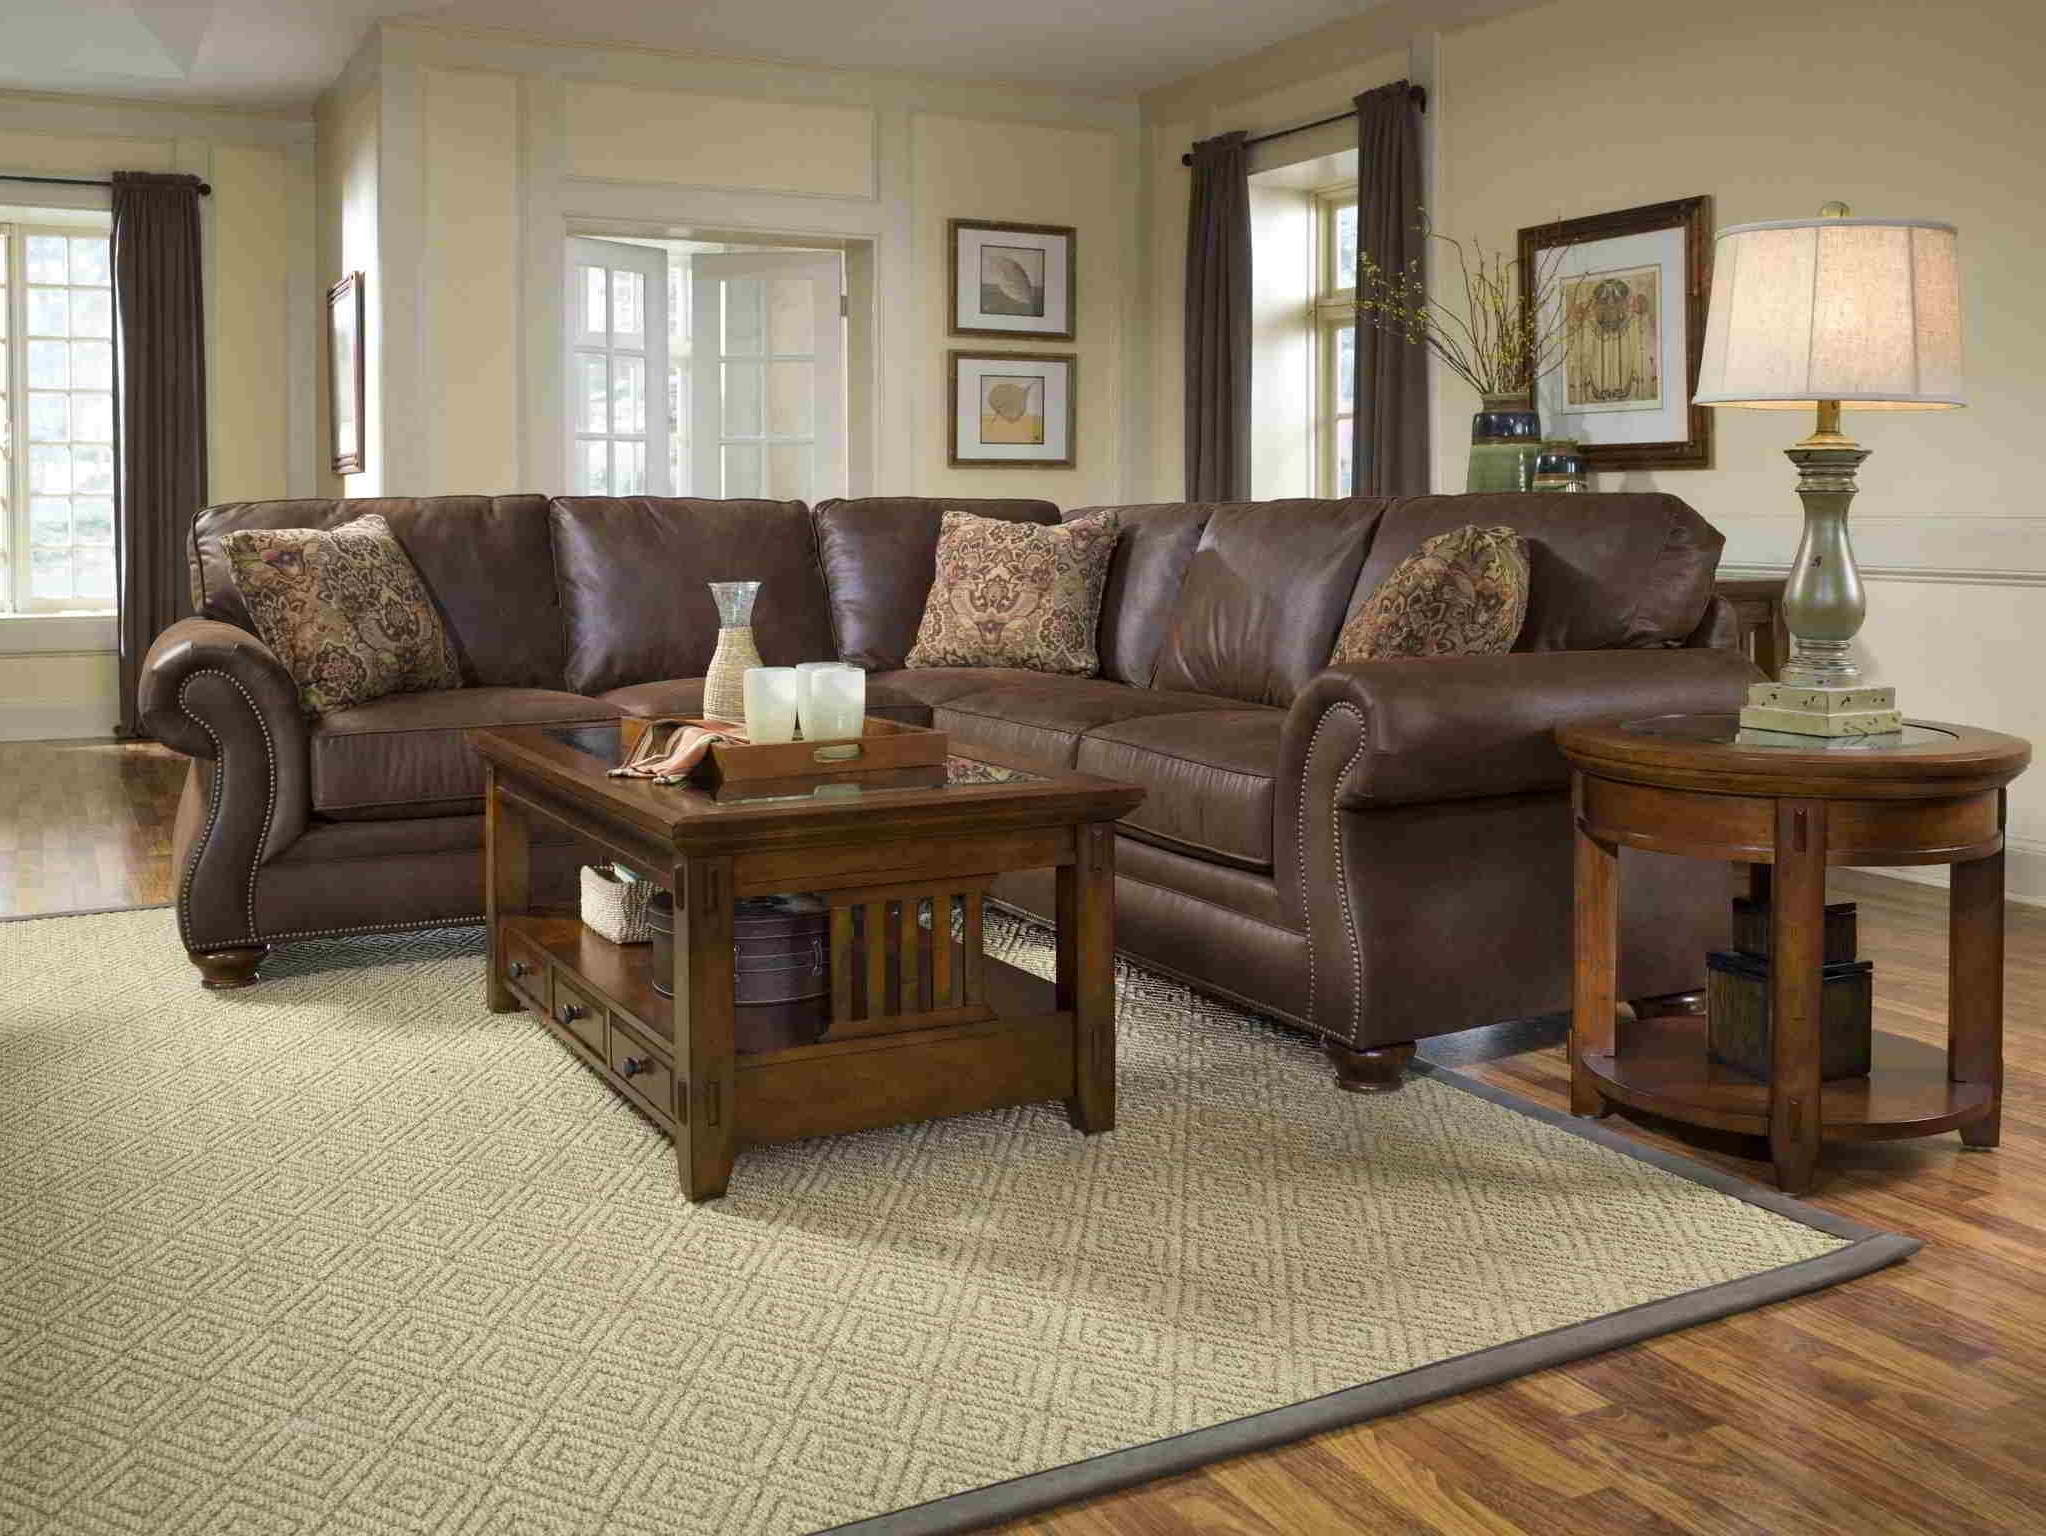 Country Style Sofas Intended For Preferred Country Style Sofas Uk Hereo Sofa – Helena Source (View 4 of 20)